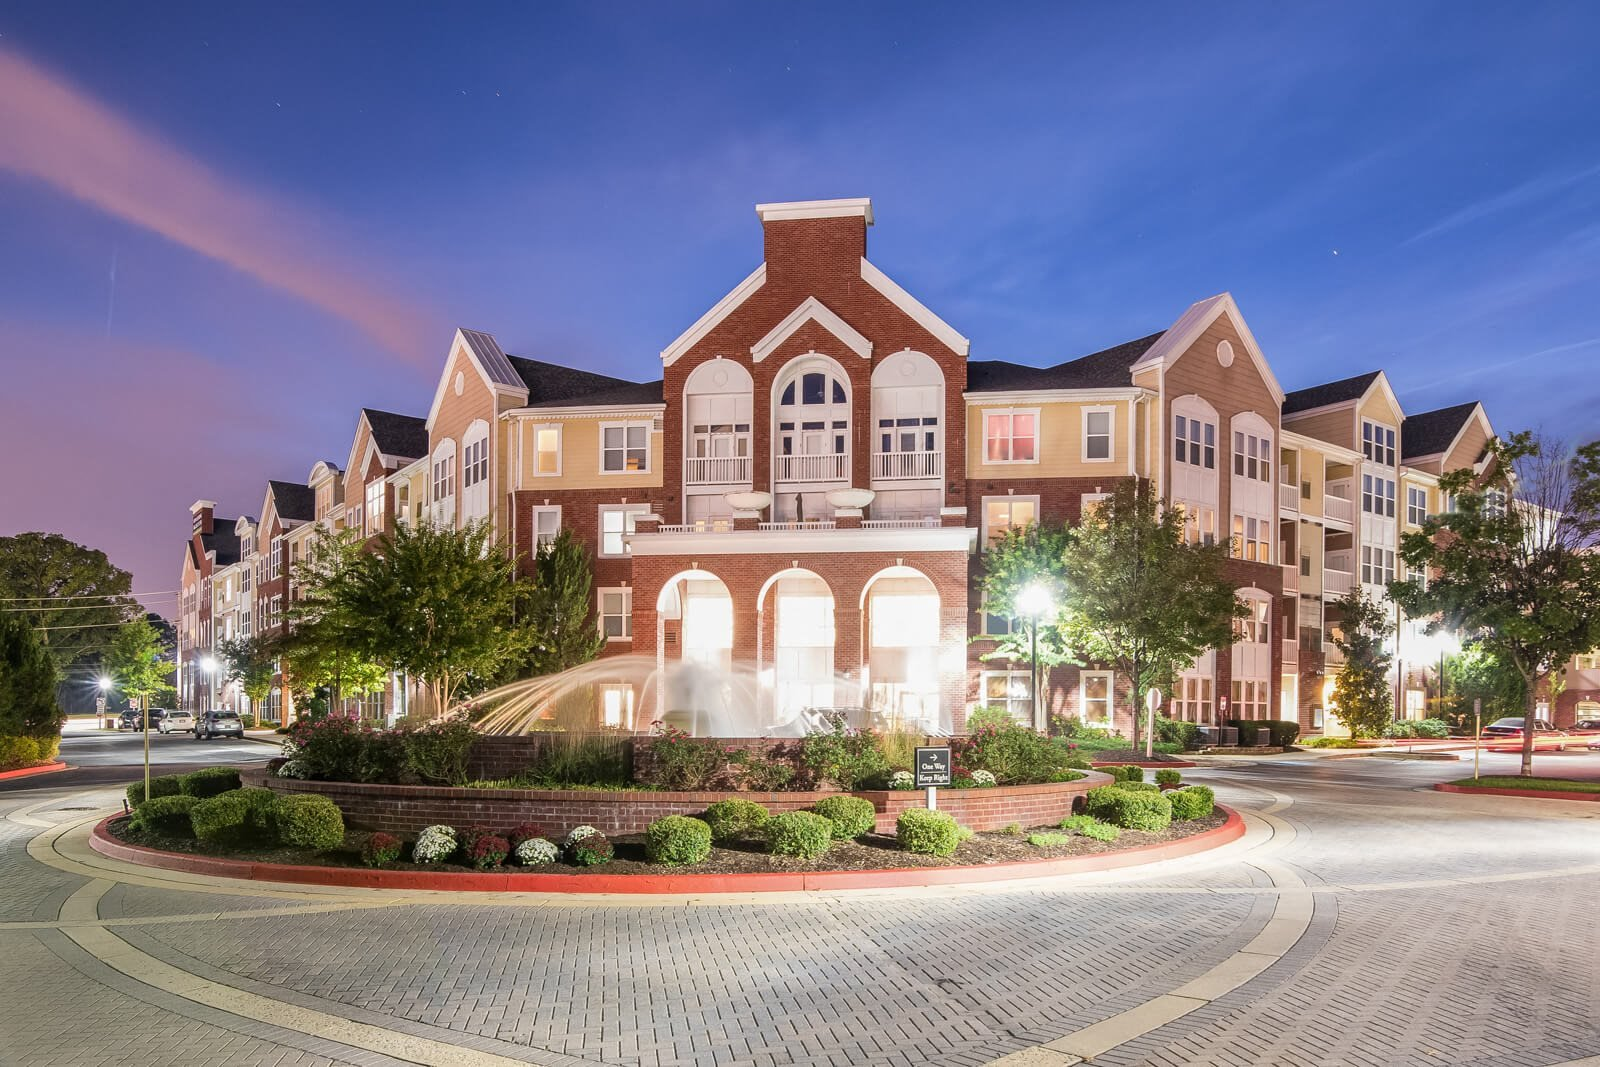 Charming Fountain and Apartment Exterior at Windsor at Contee Crossing, Laurel, Maryland